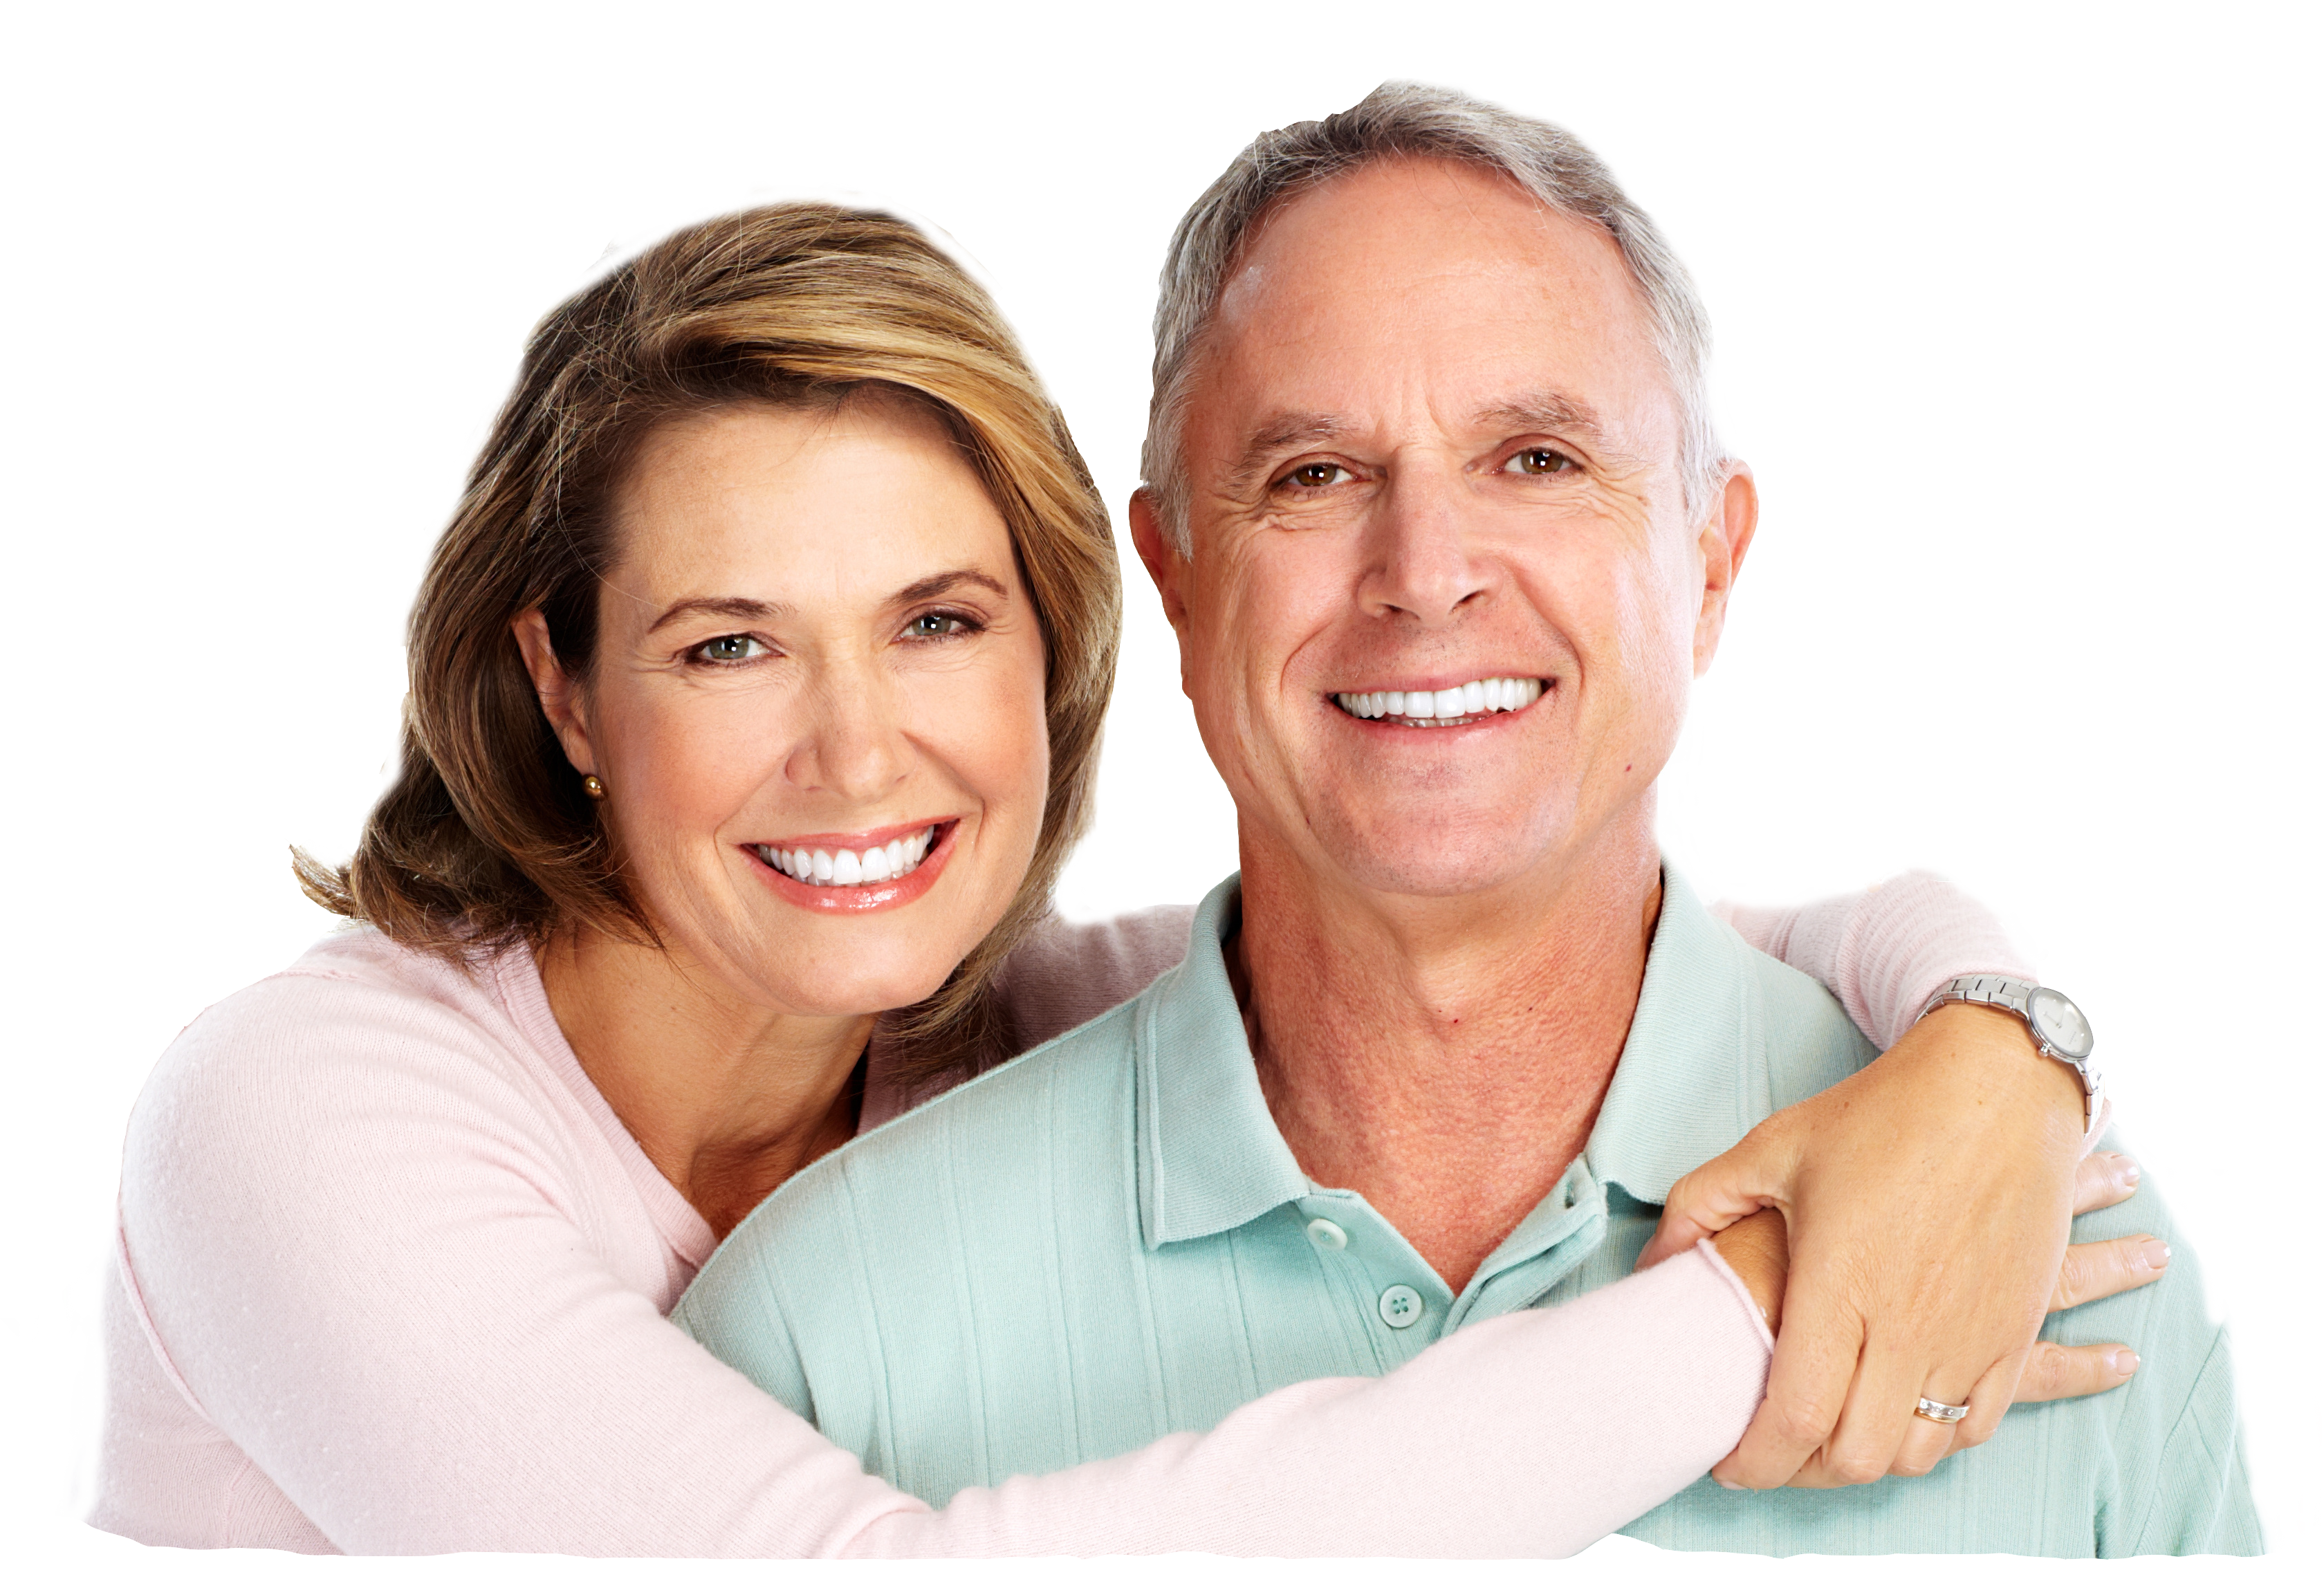 Smiling couple png. South loop chiropractor advanced